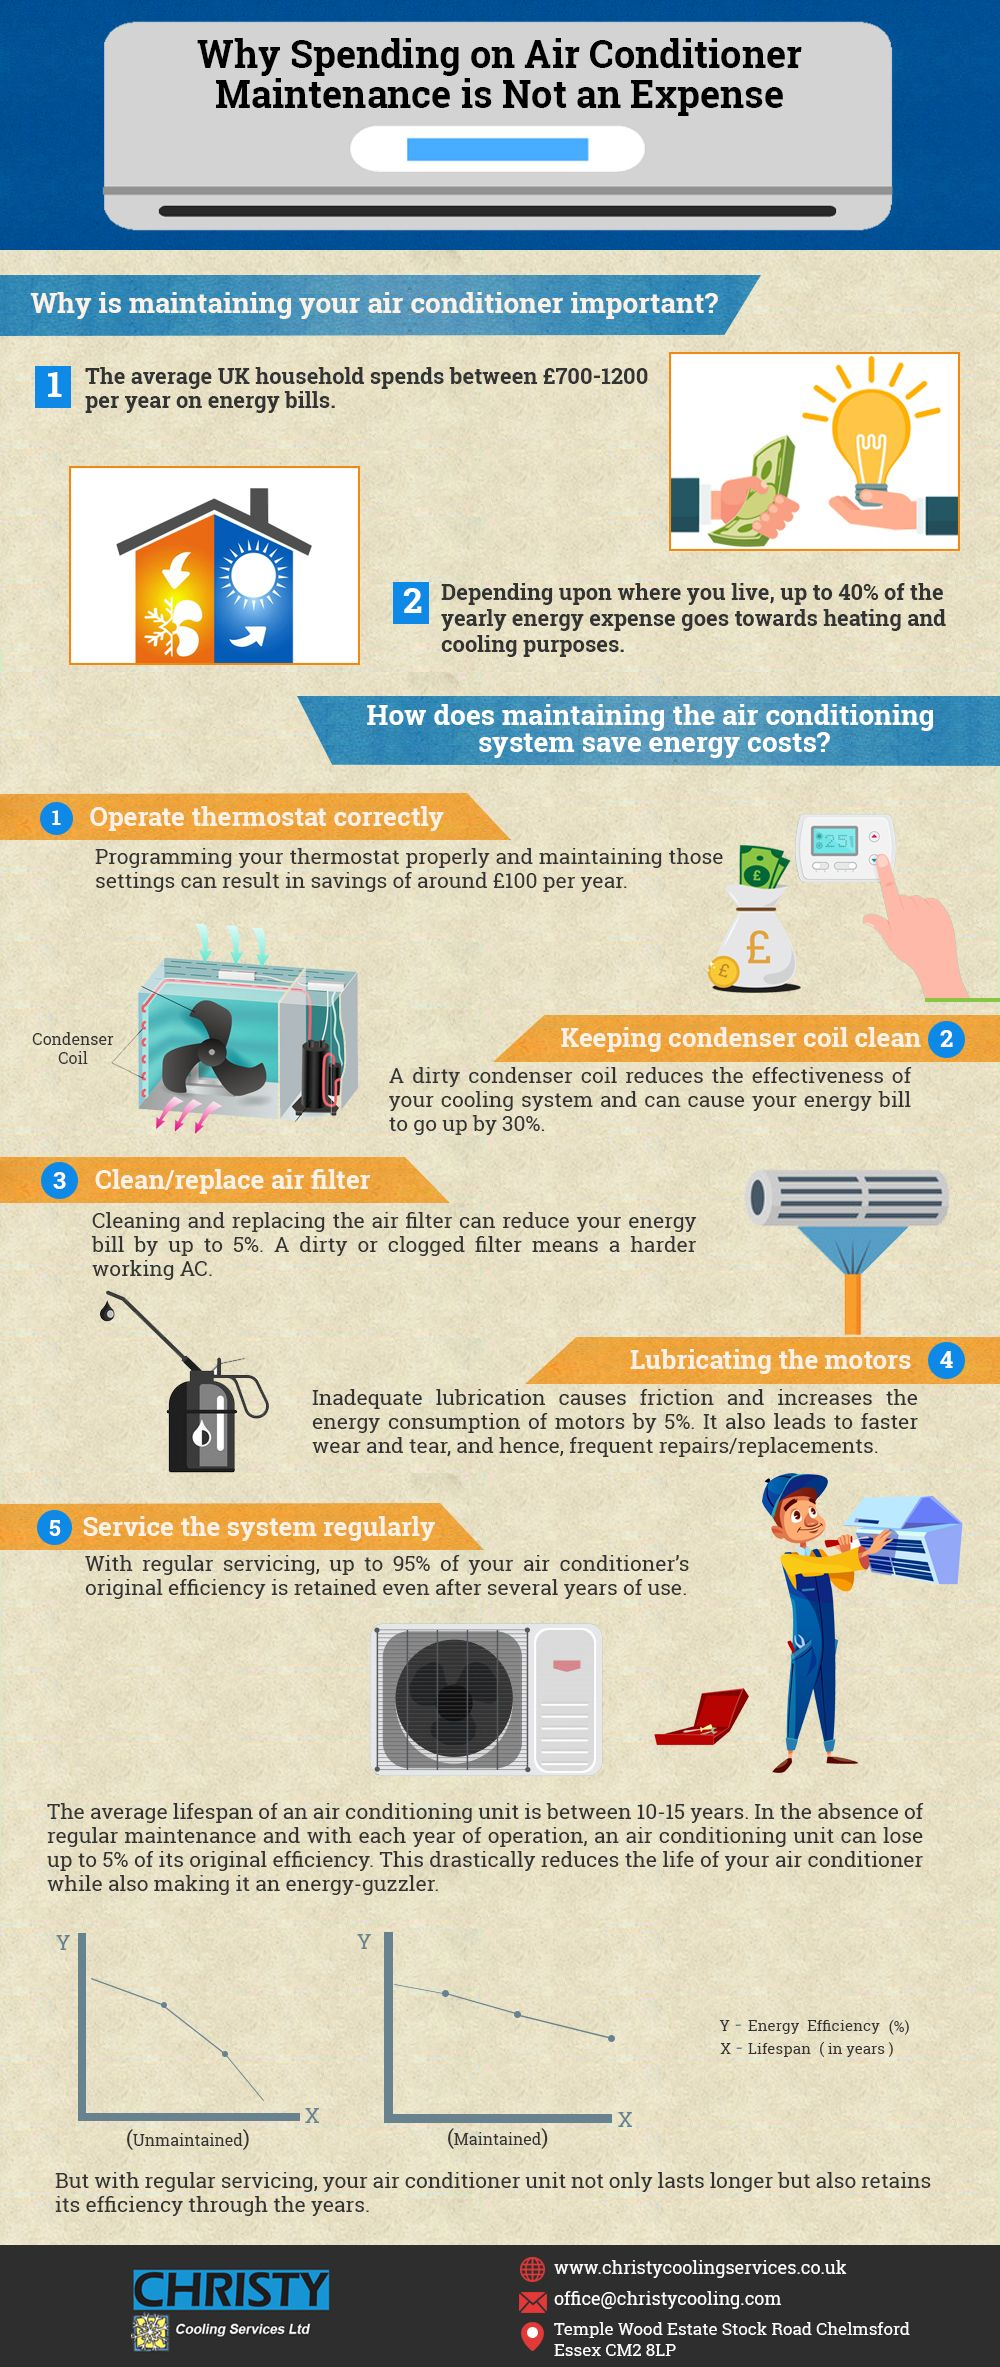 Why Spending on Air Conditioner Maintenance is Not an